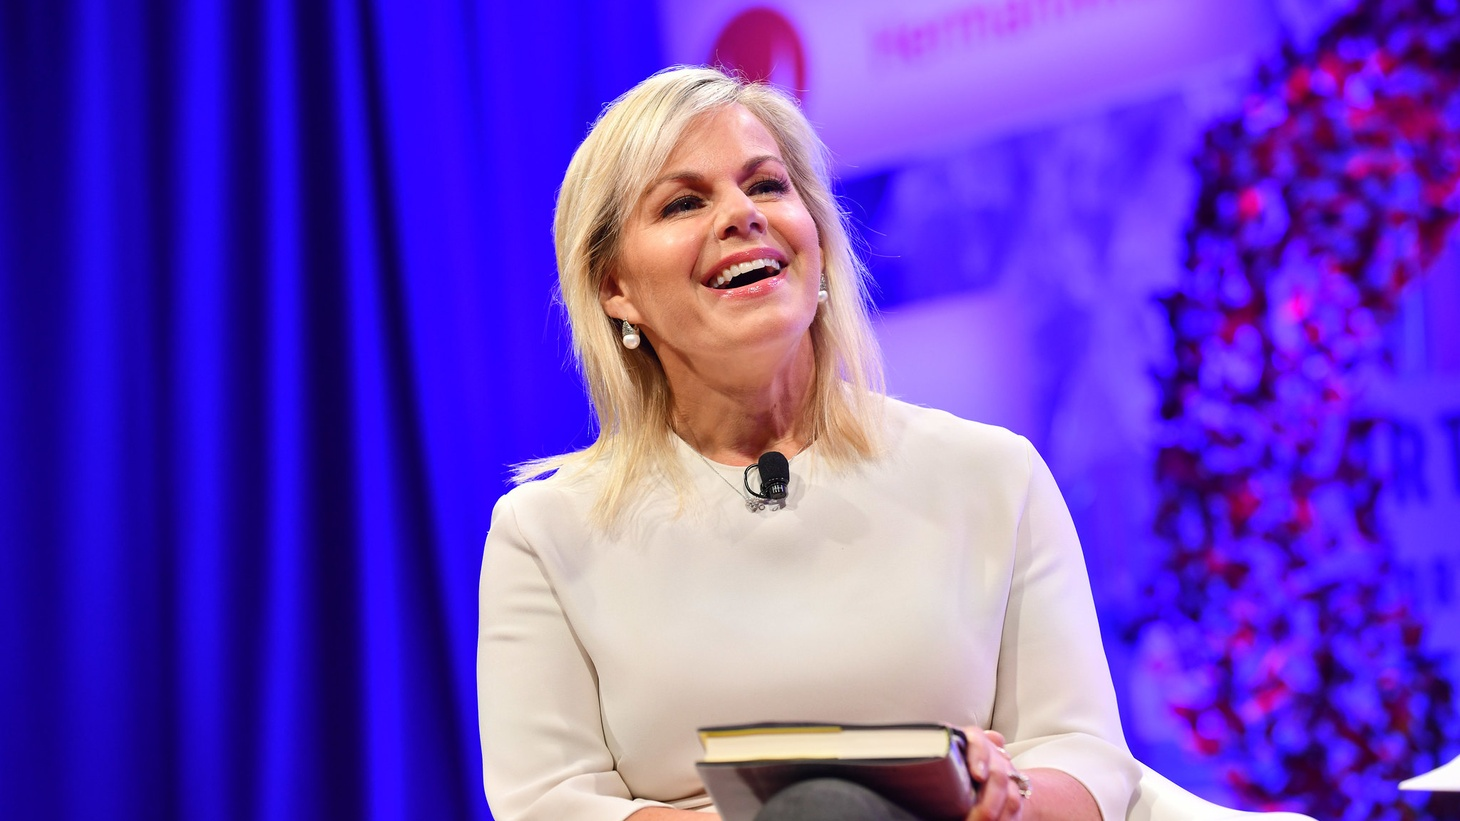 Gretchen Carlson, TV Journalist and Women's Empowerment Advocate, at the Fortune Most Powerful Women 2017 Summit. Washington D.C.